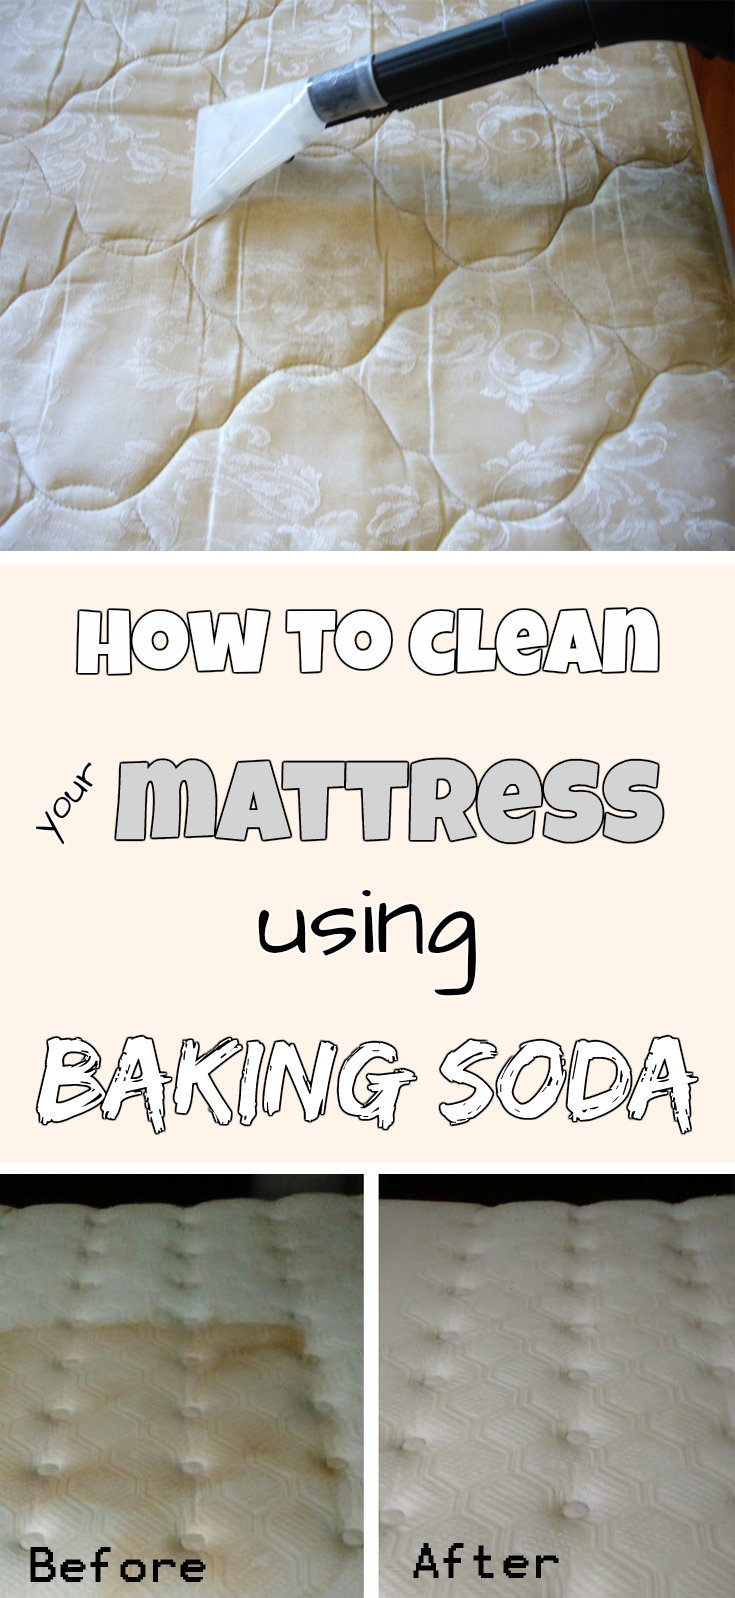 Car Wash Vacuum Cleaner >> How to clean your mattress using baking soda - myCleaningSolutions.com